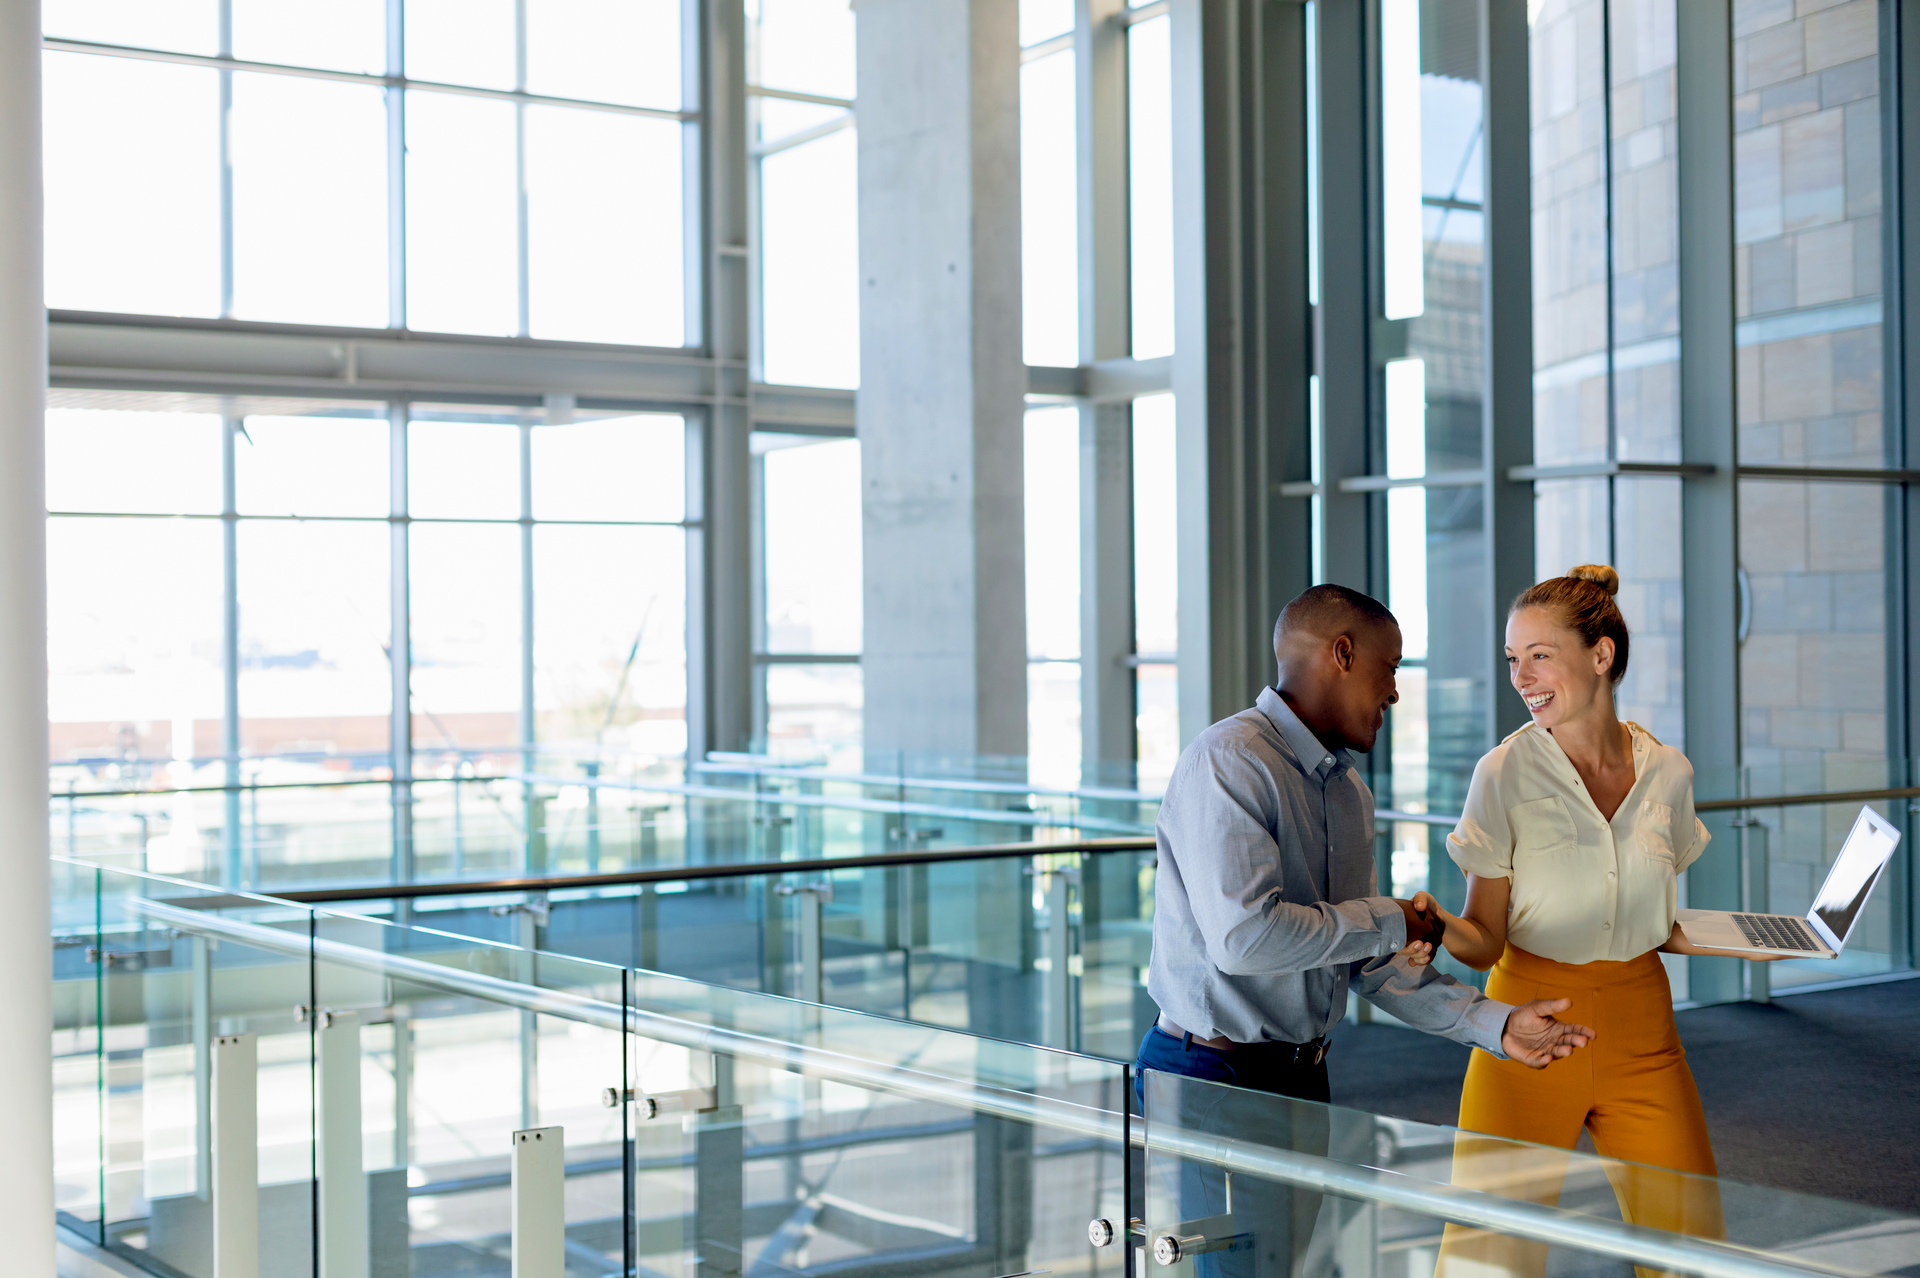 Businessman shaking hand of businesswoman in building terminal